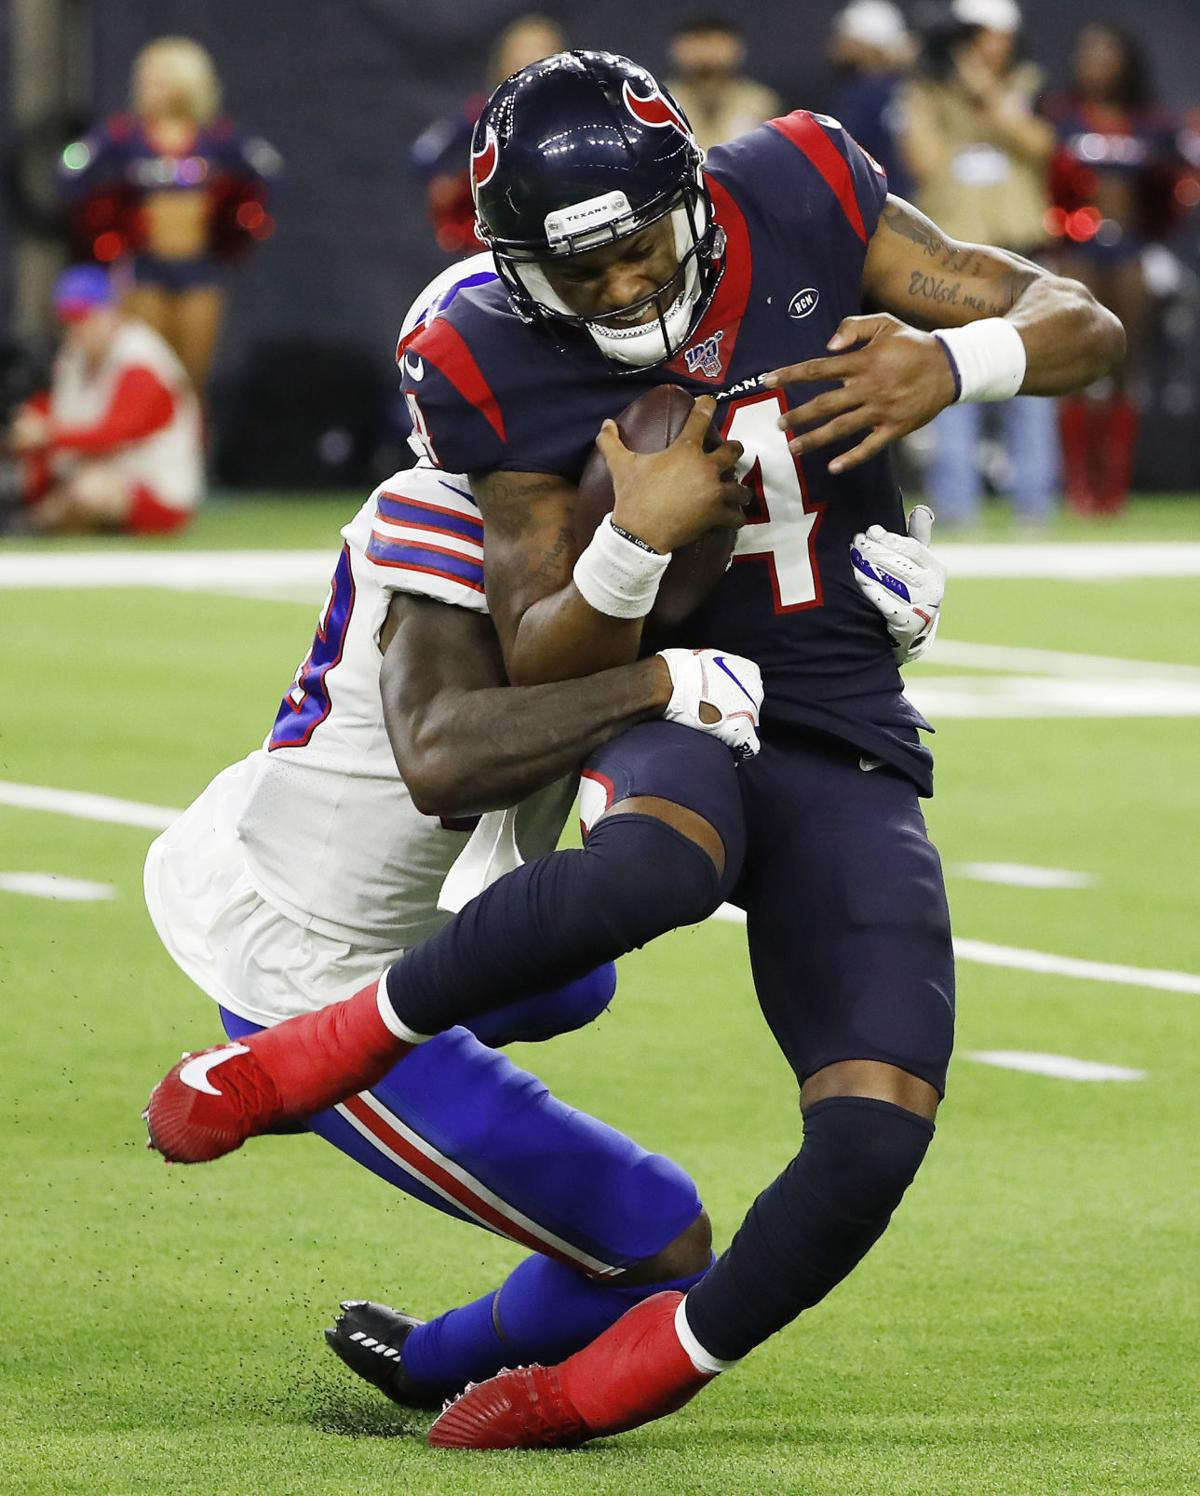 Houston Texans vs. Buffalo Bills